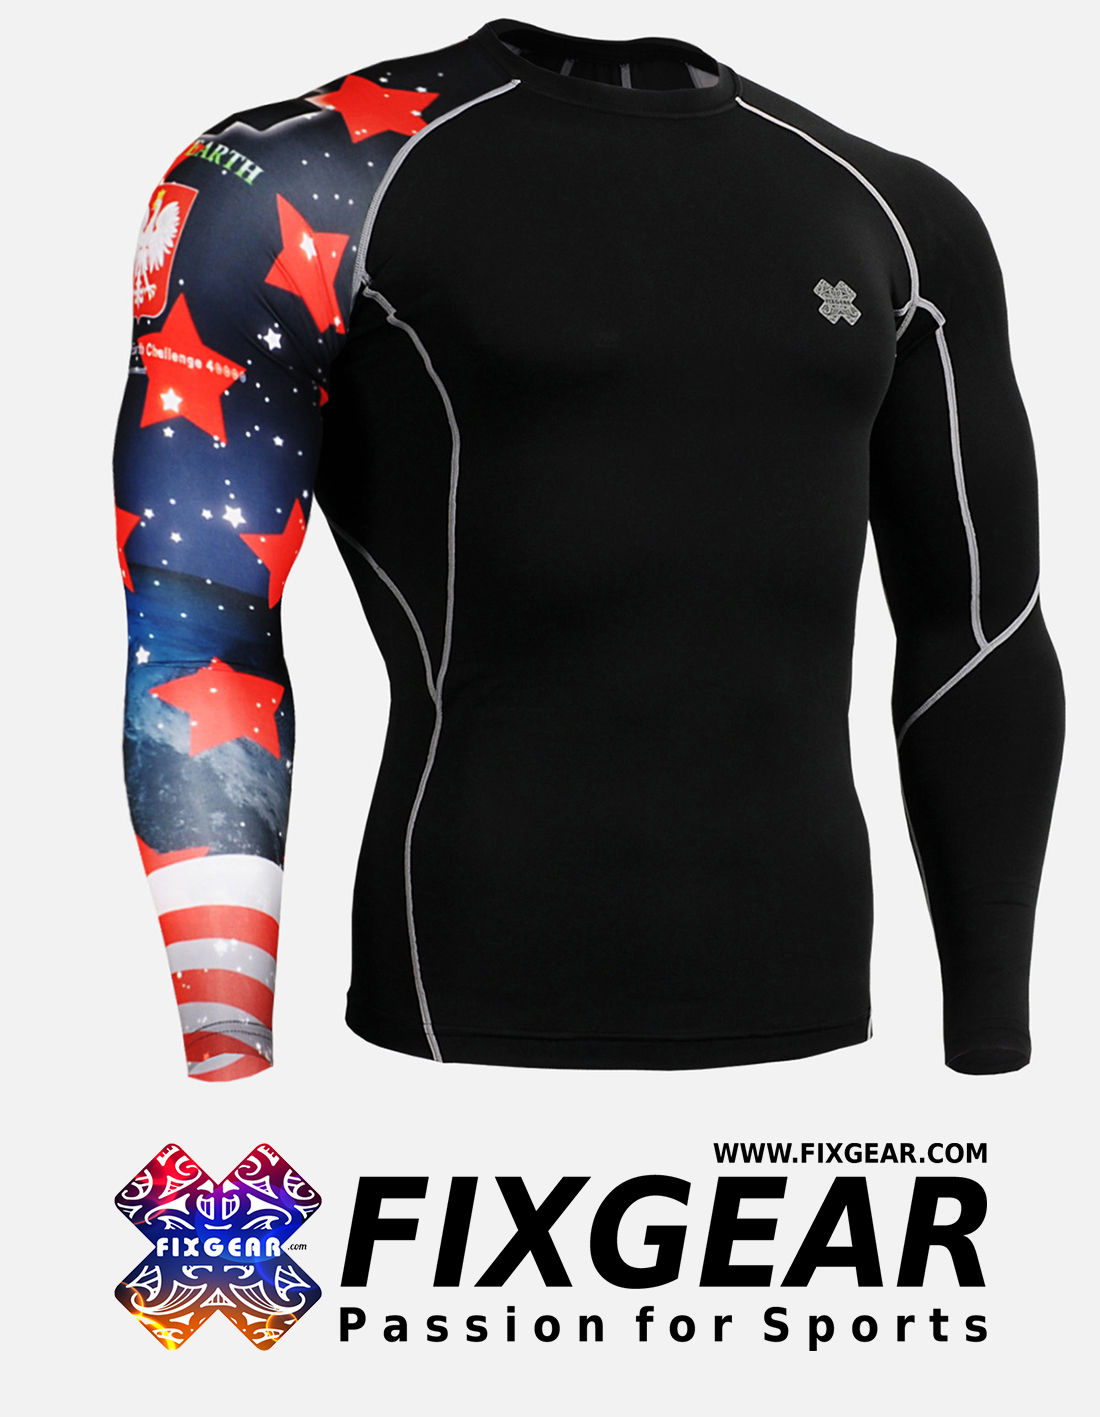 FIXGEAR CP-B10 Compression Base Layer Shirt